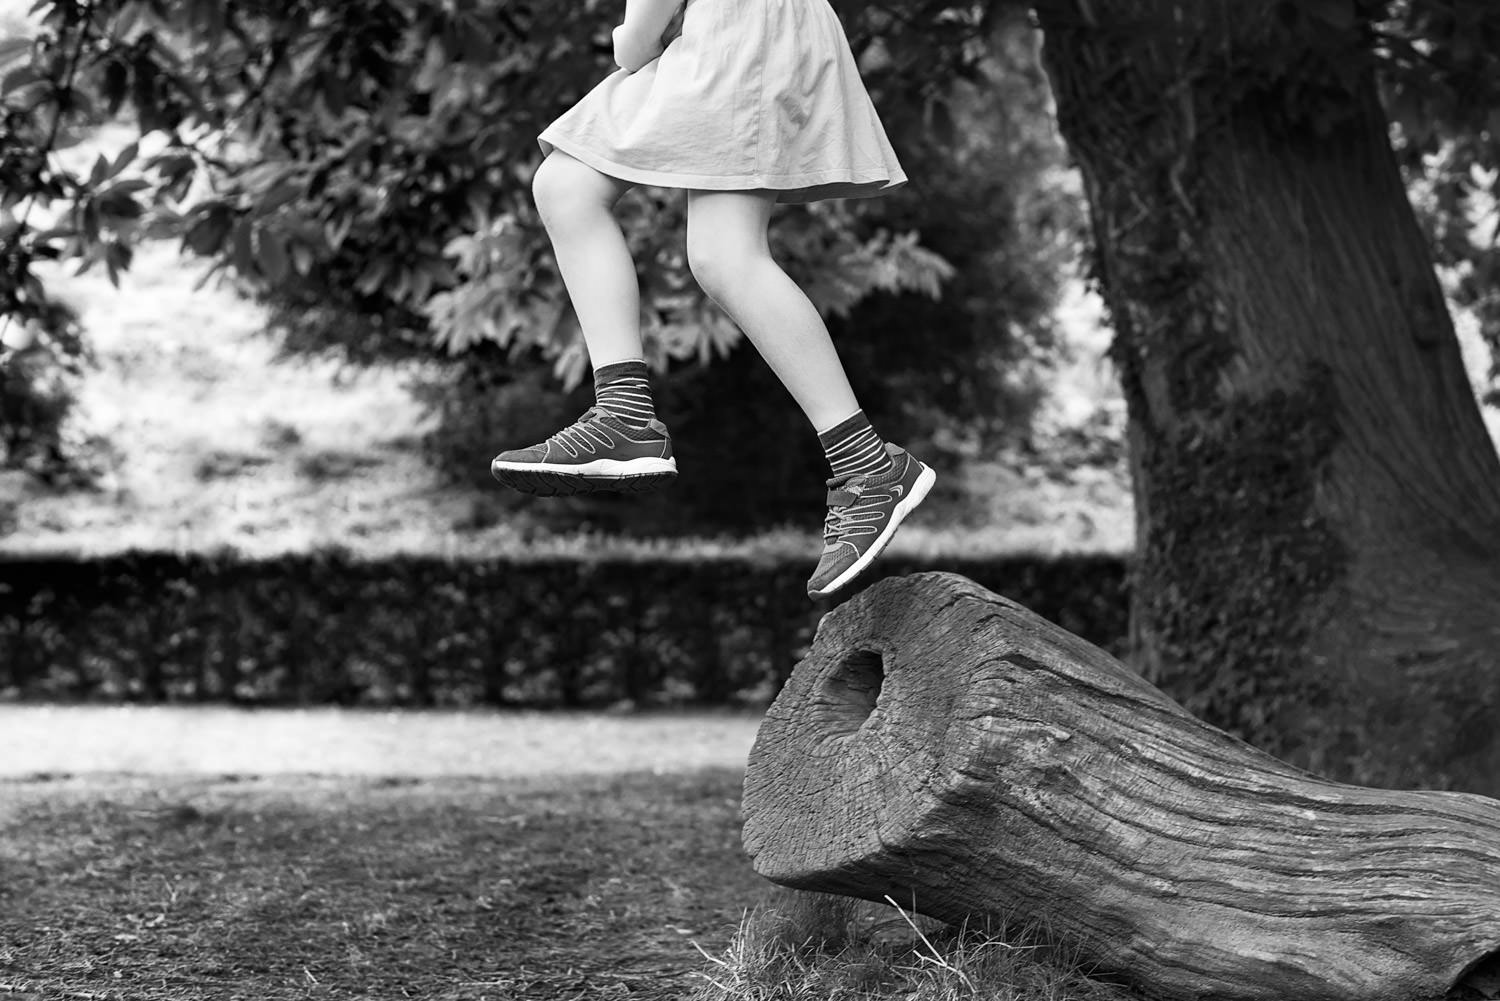 Girl suspended mid air as she jumps off log